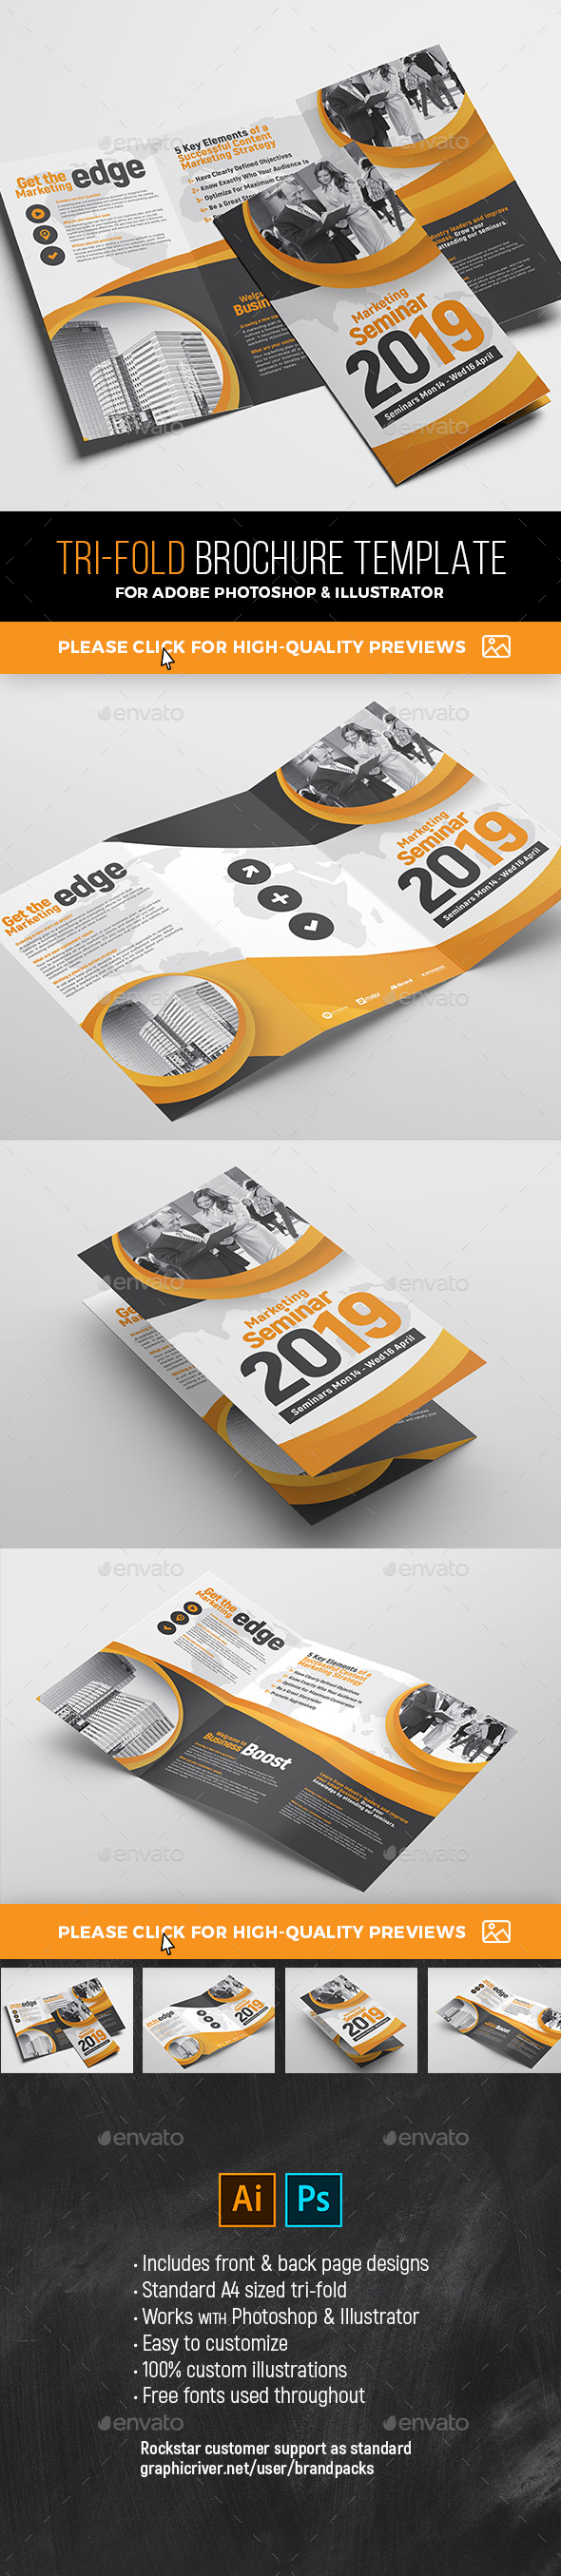 Corporate Event Tri-Fold Brochure - Corporate Brochures